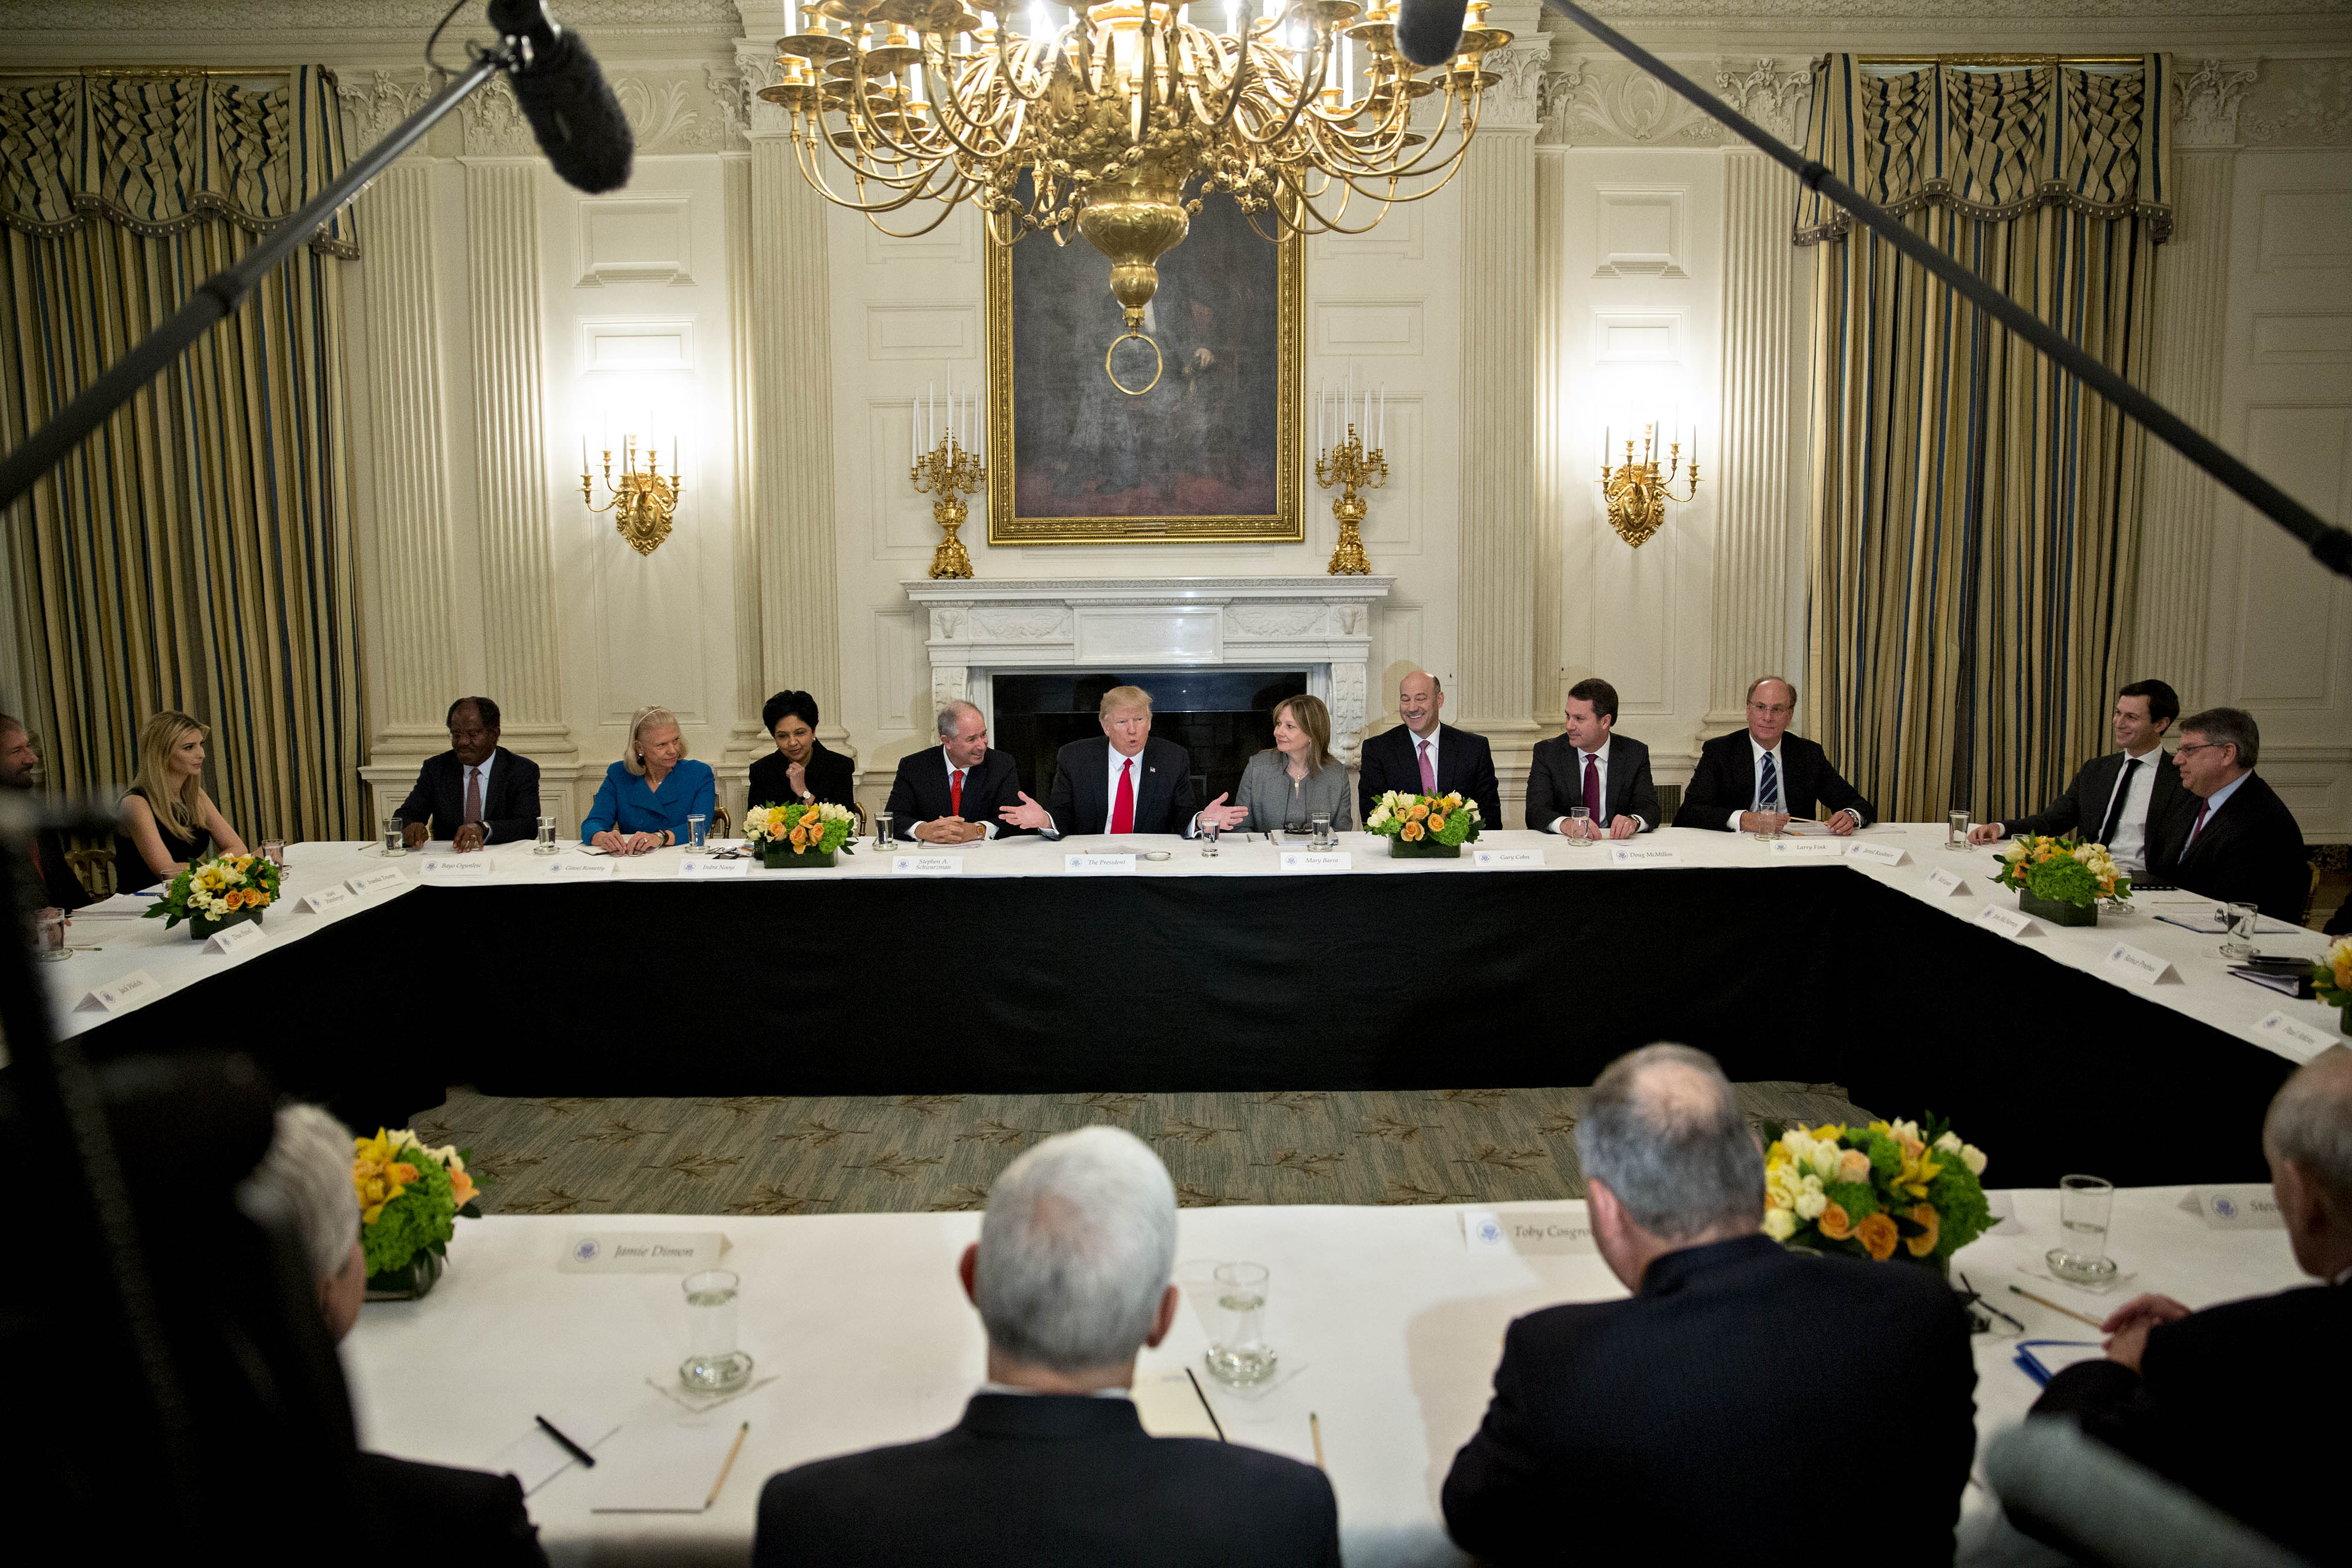 President Trump Participates In Strategic And Policy Forum At The White House